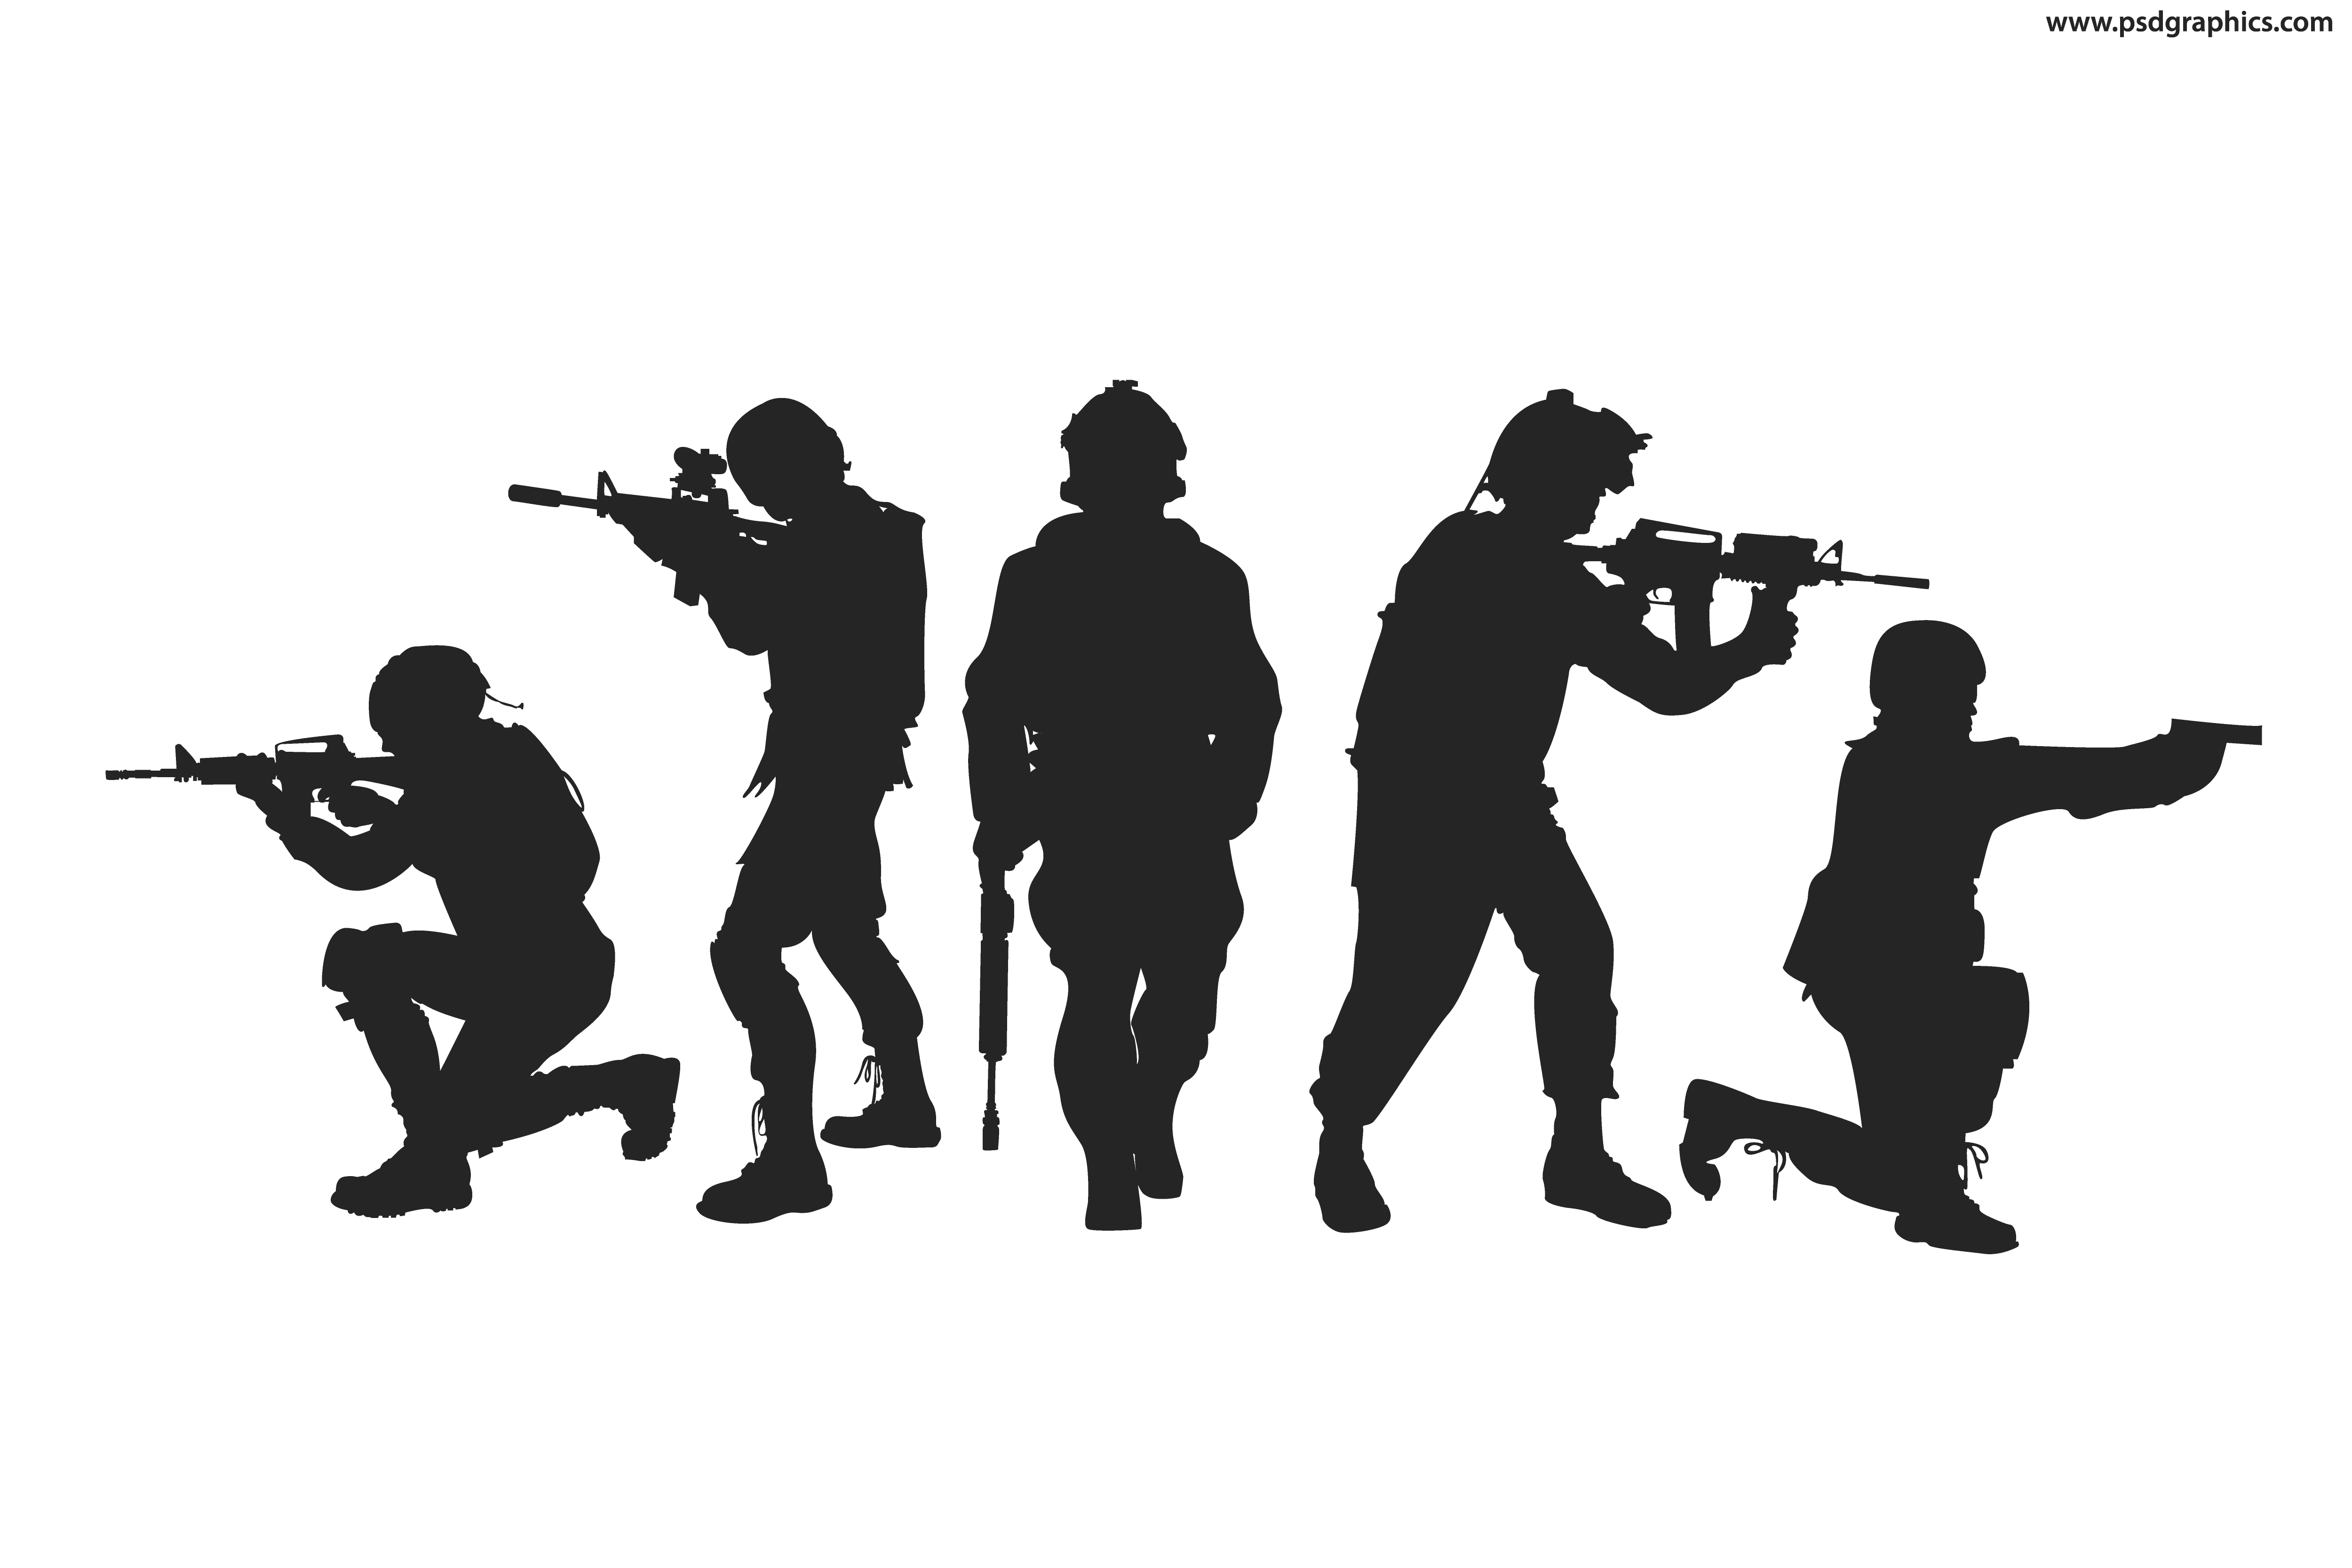 5000x3333 15 Soldiers Vector For Free Download On Mbtskoudsalg